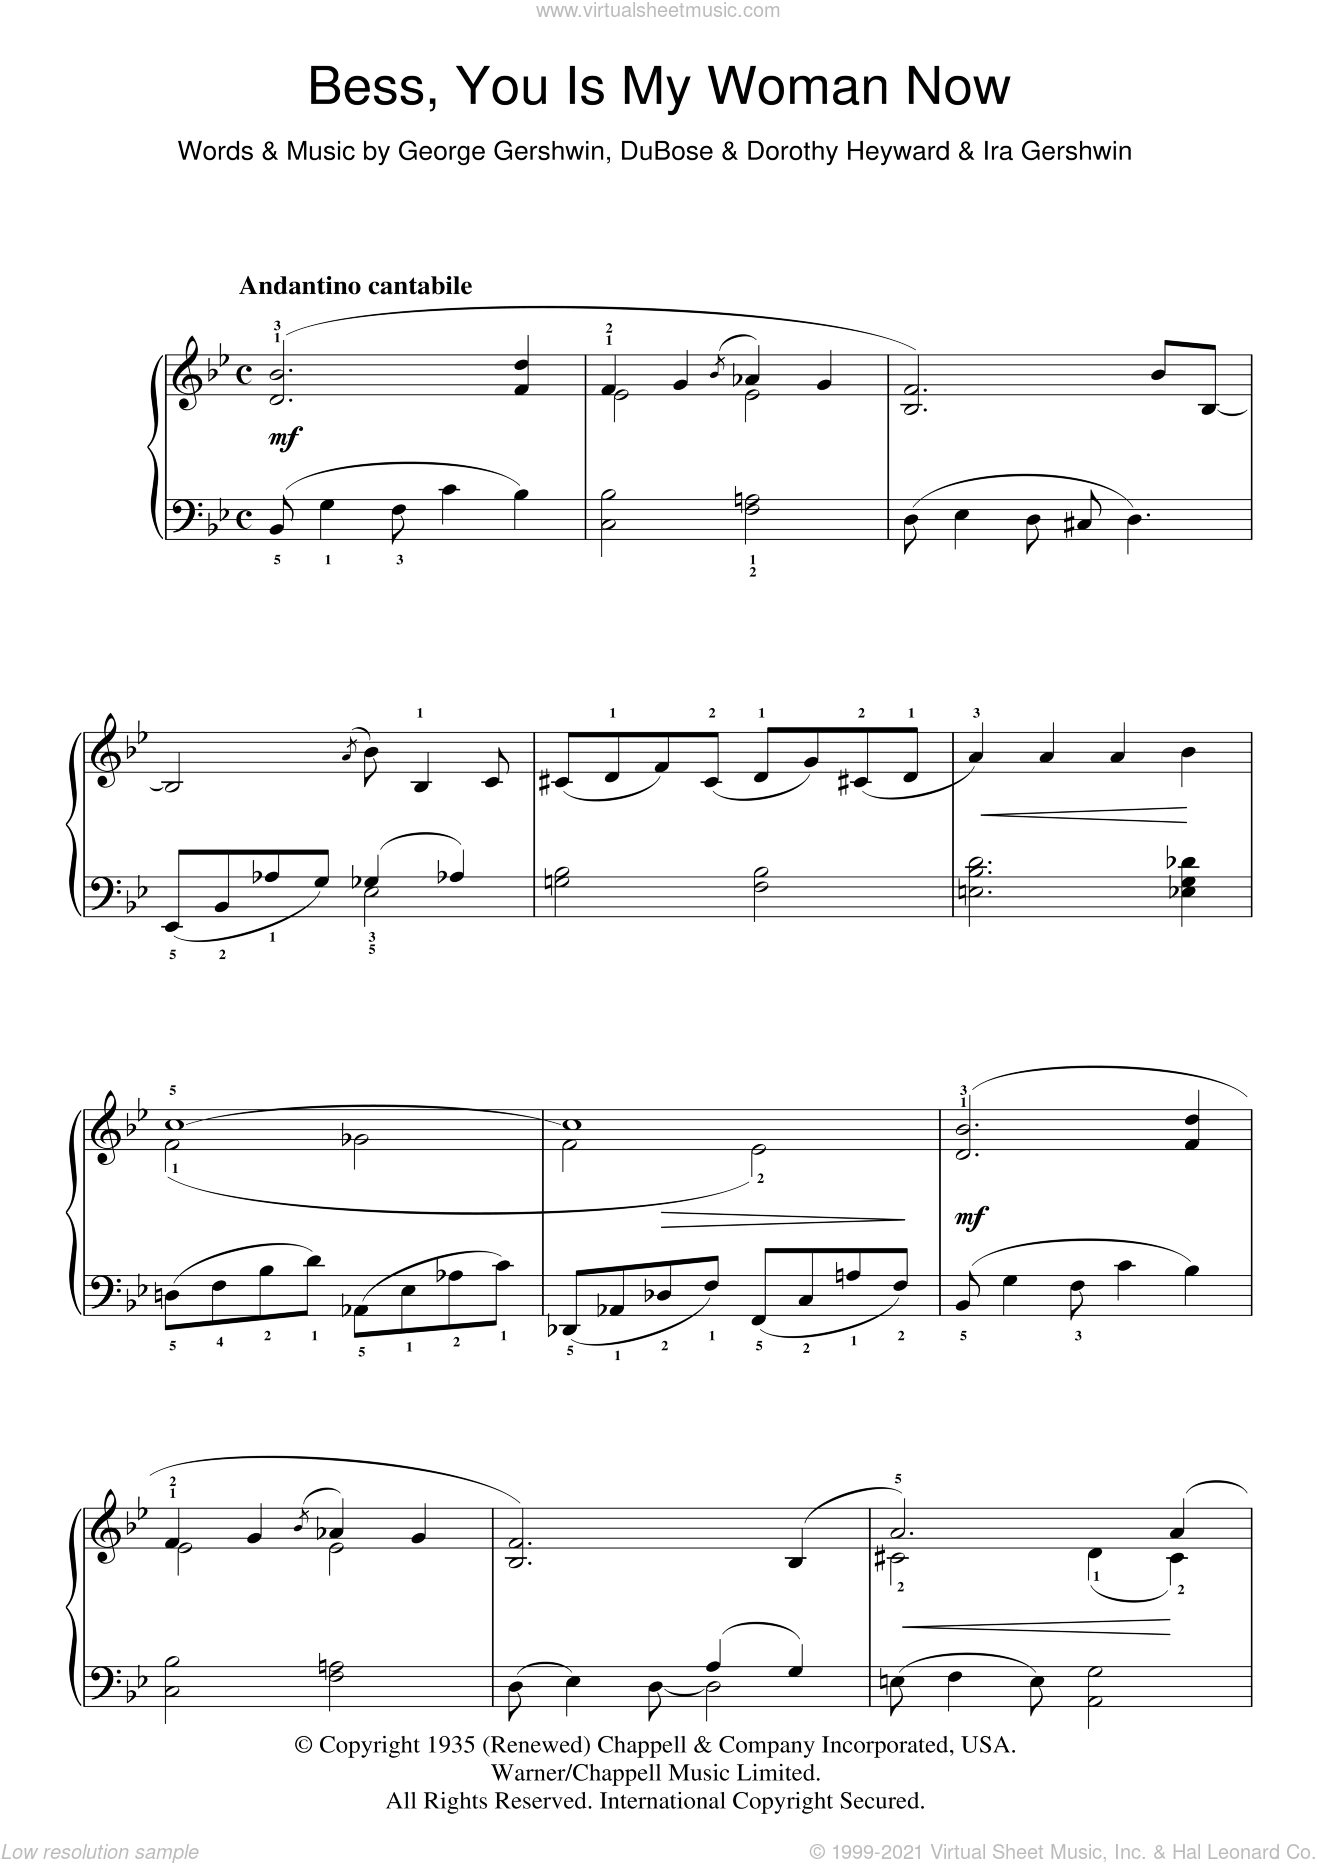 Bess, You Is My Woman Now sheet music for piano solo by Ira Gershwin